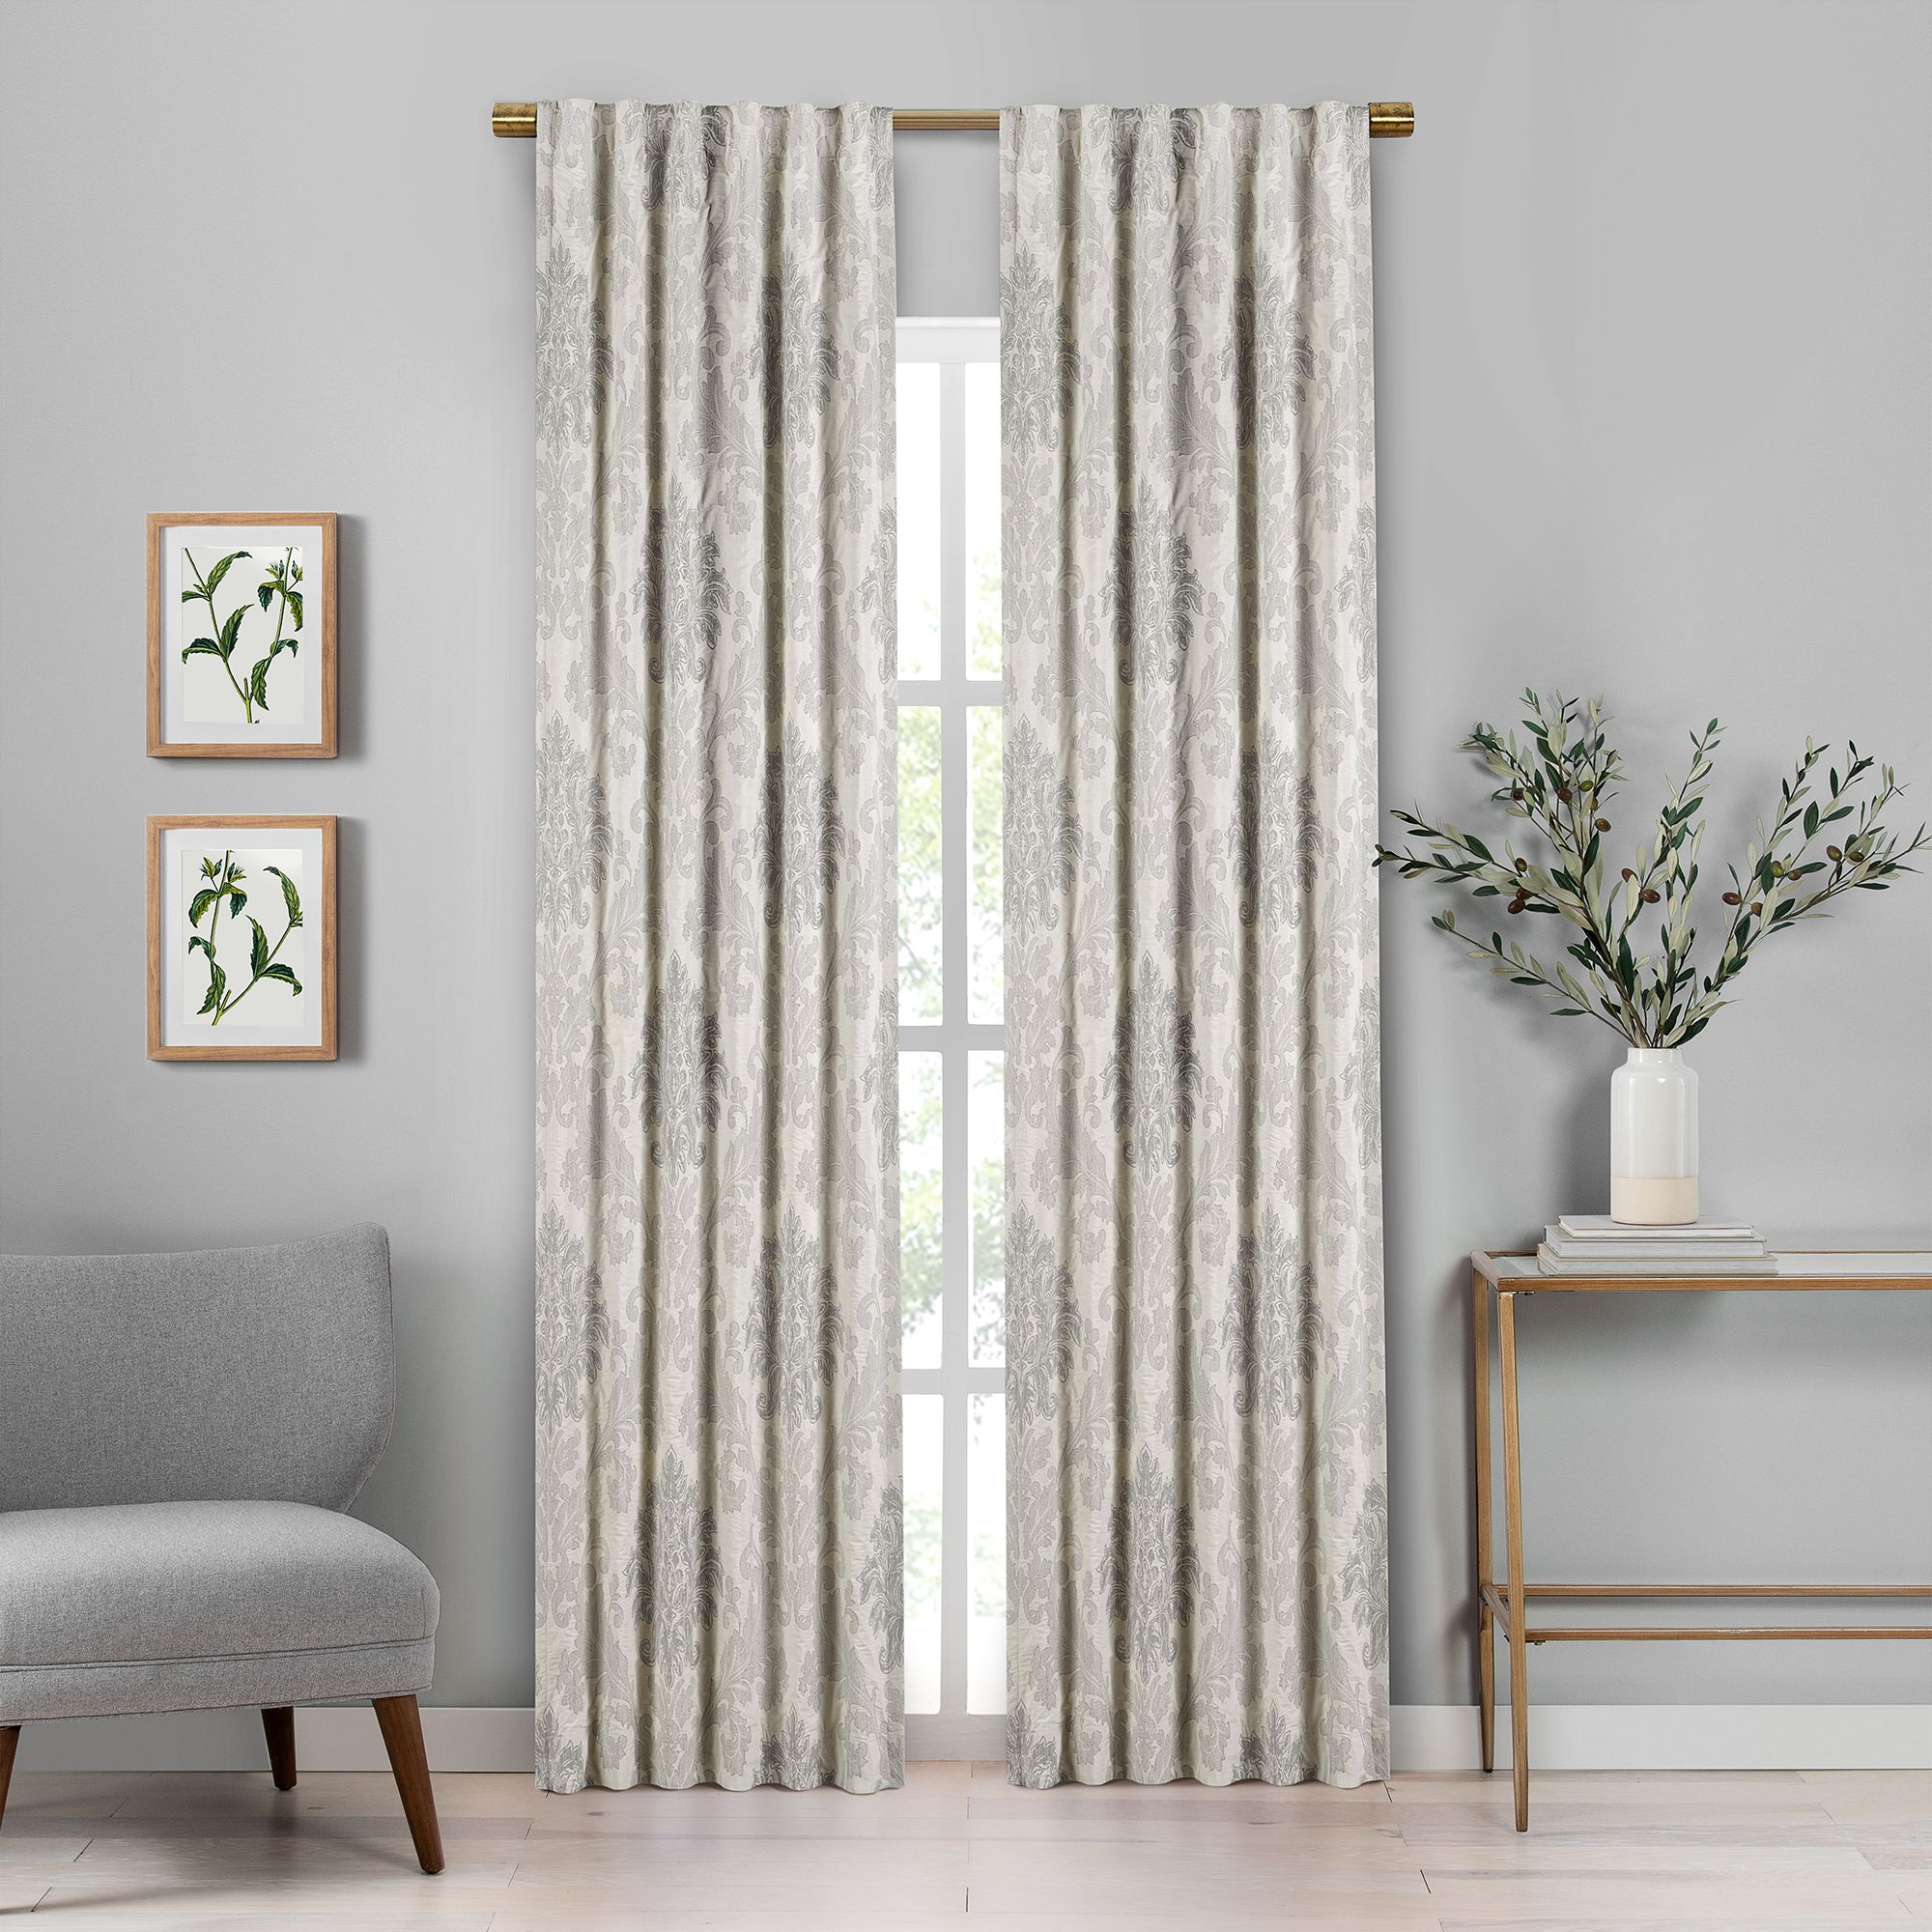 Phoebe Curtain Panel Pair 84 Panel Curtains Curtains Home Decor